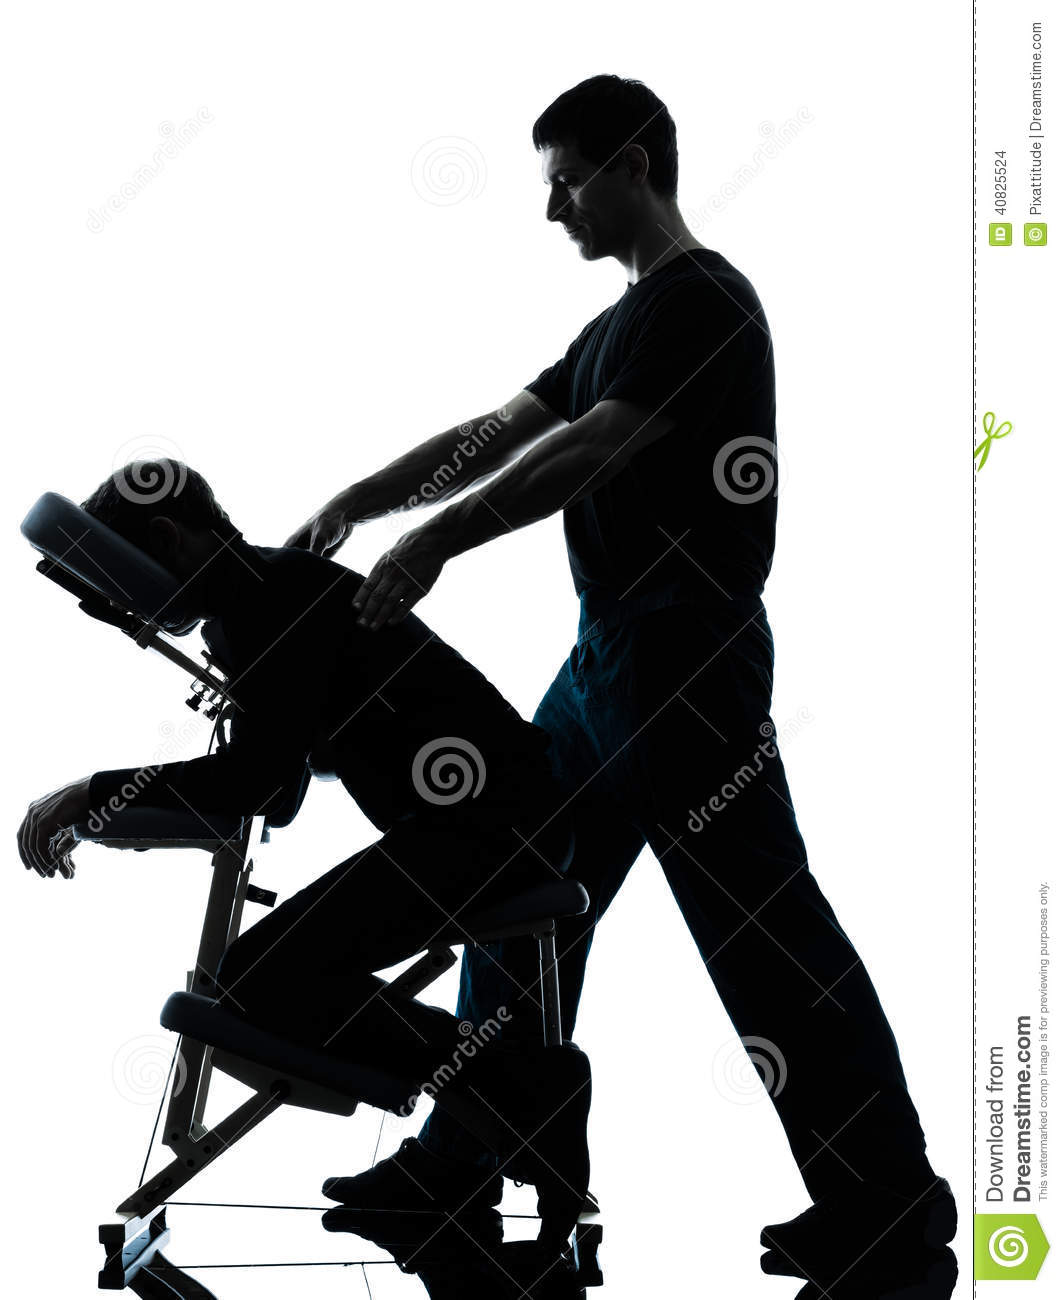 Chair massage therapy - Back Massage Therapy With Chair Silhouette Stock Photo